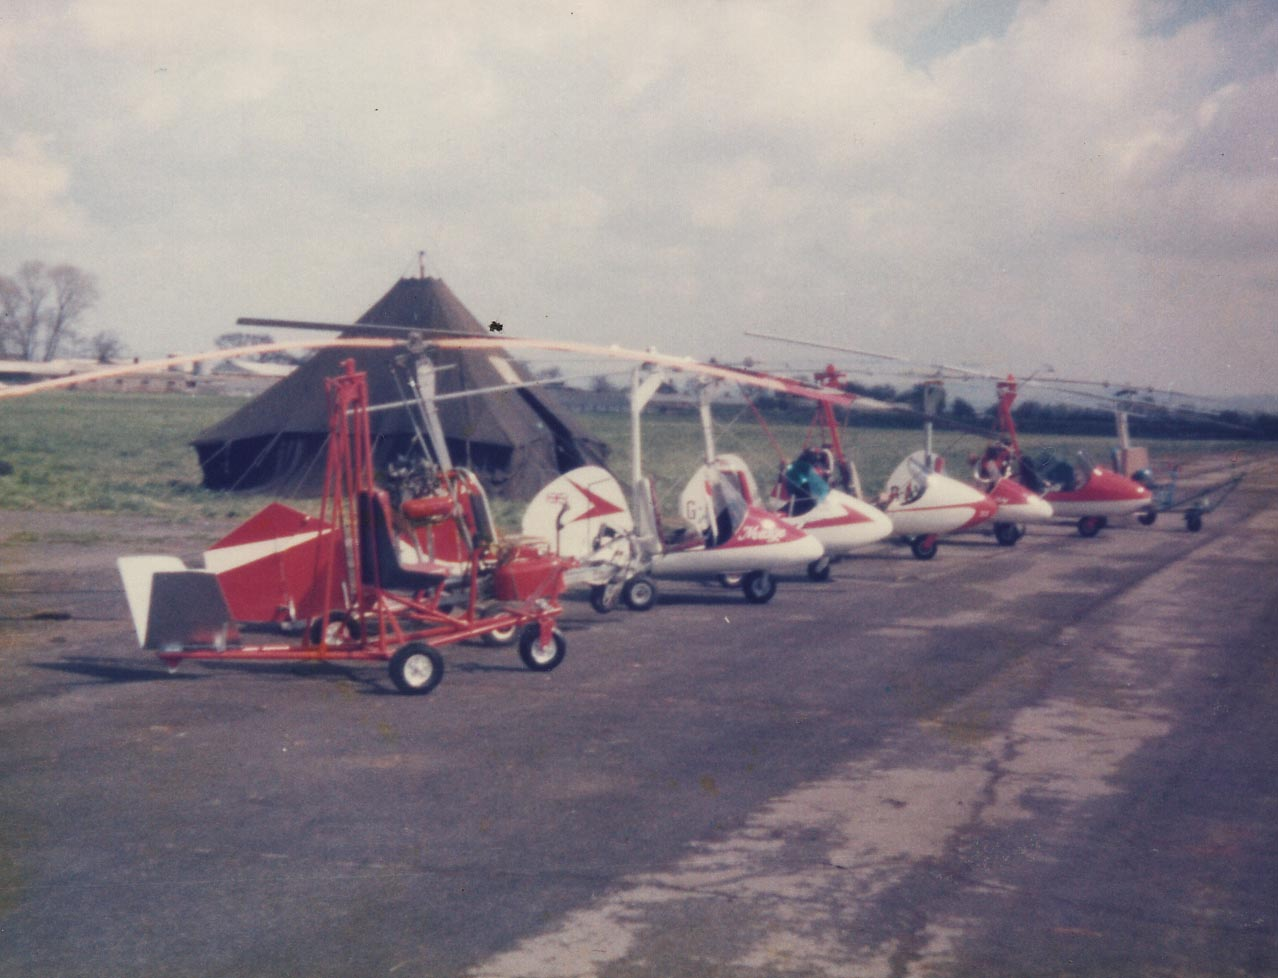 Melbourne Airfield 1980